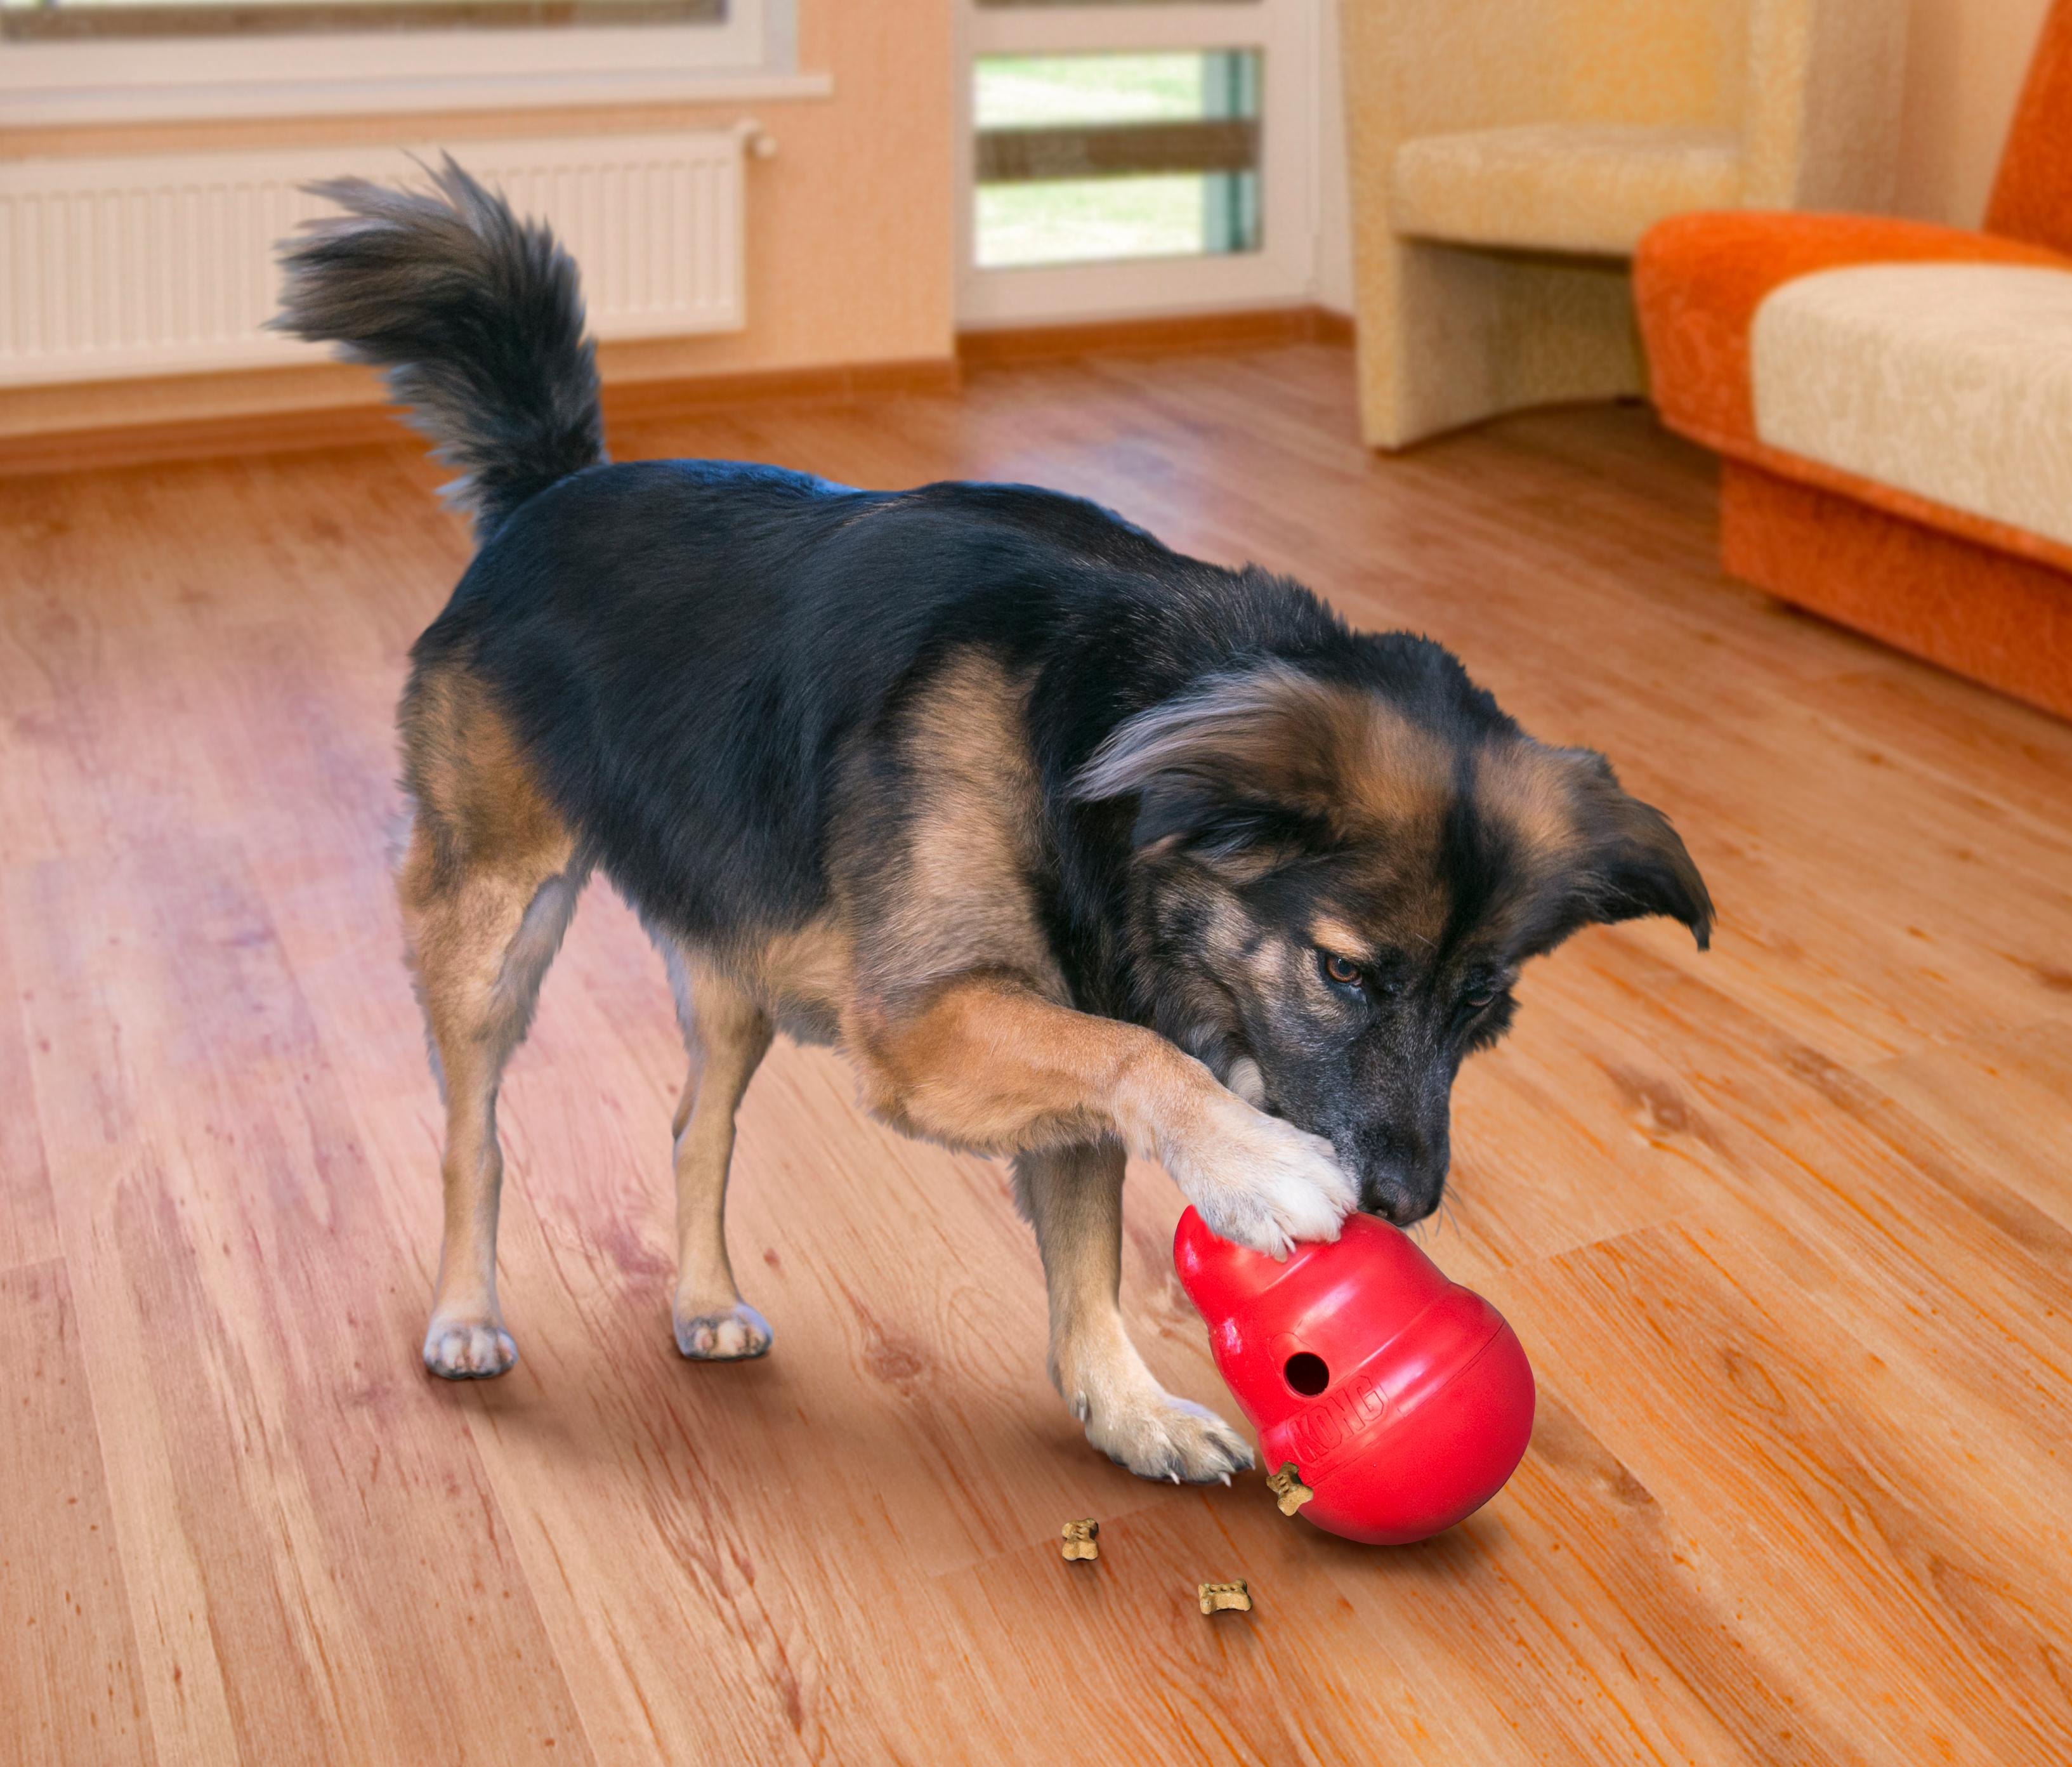 Dog Toys: How to Choose Safe and Appropriate Toys